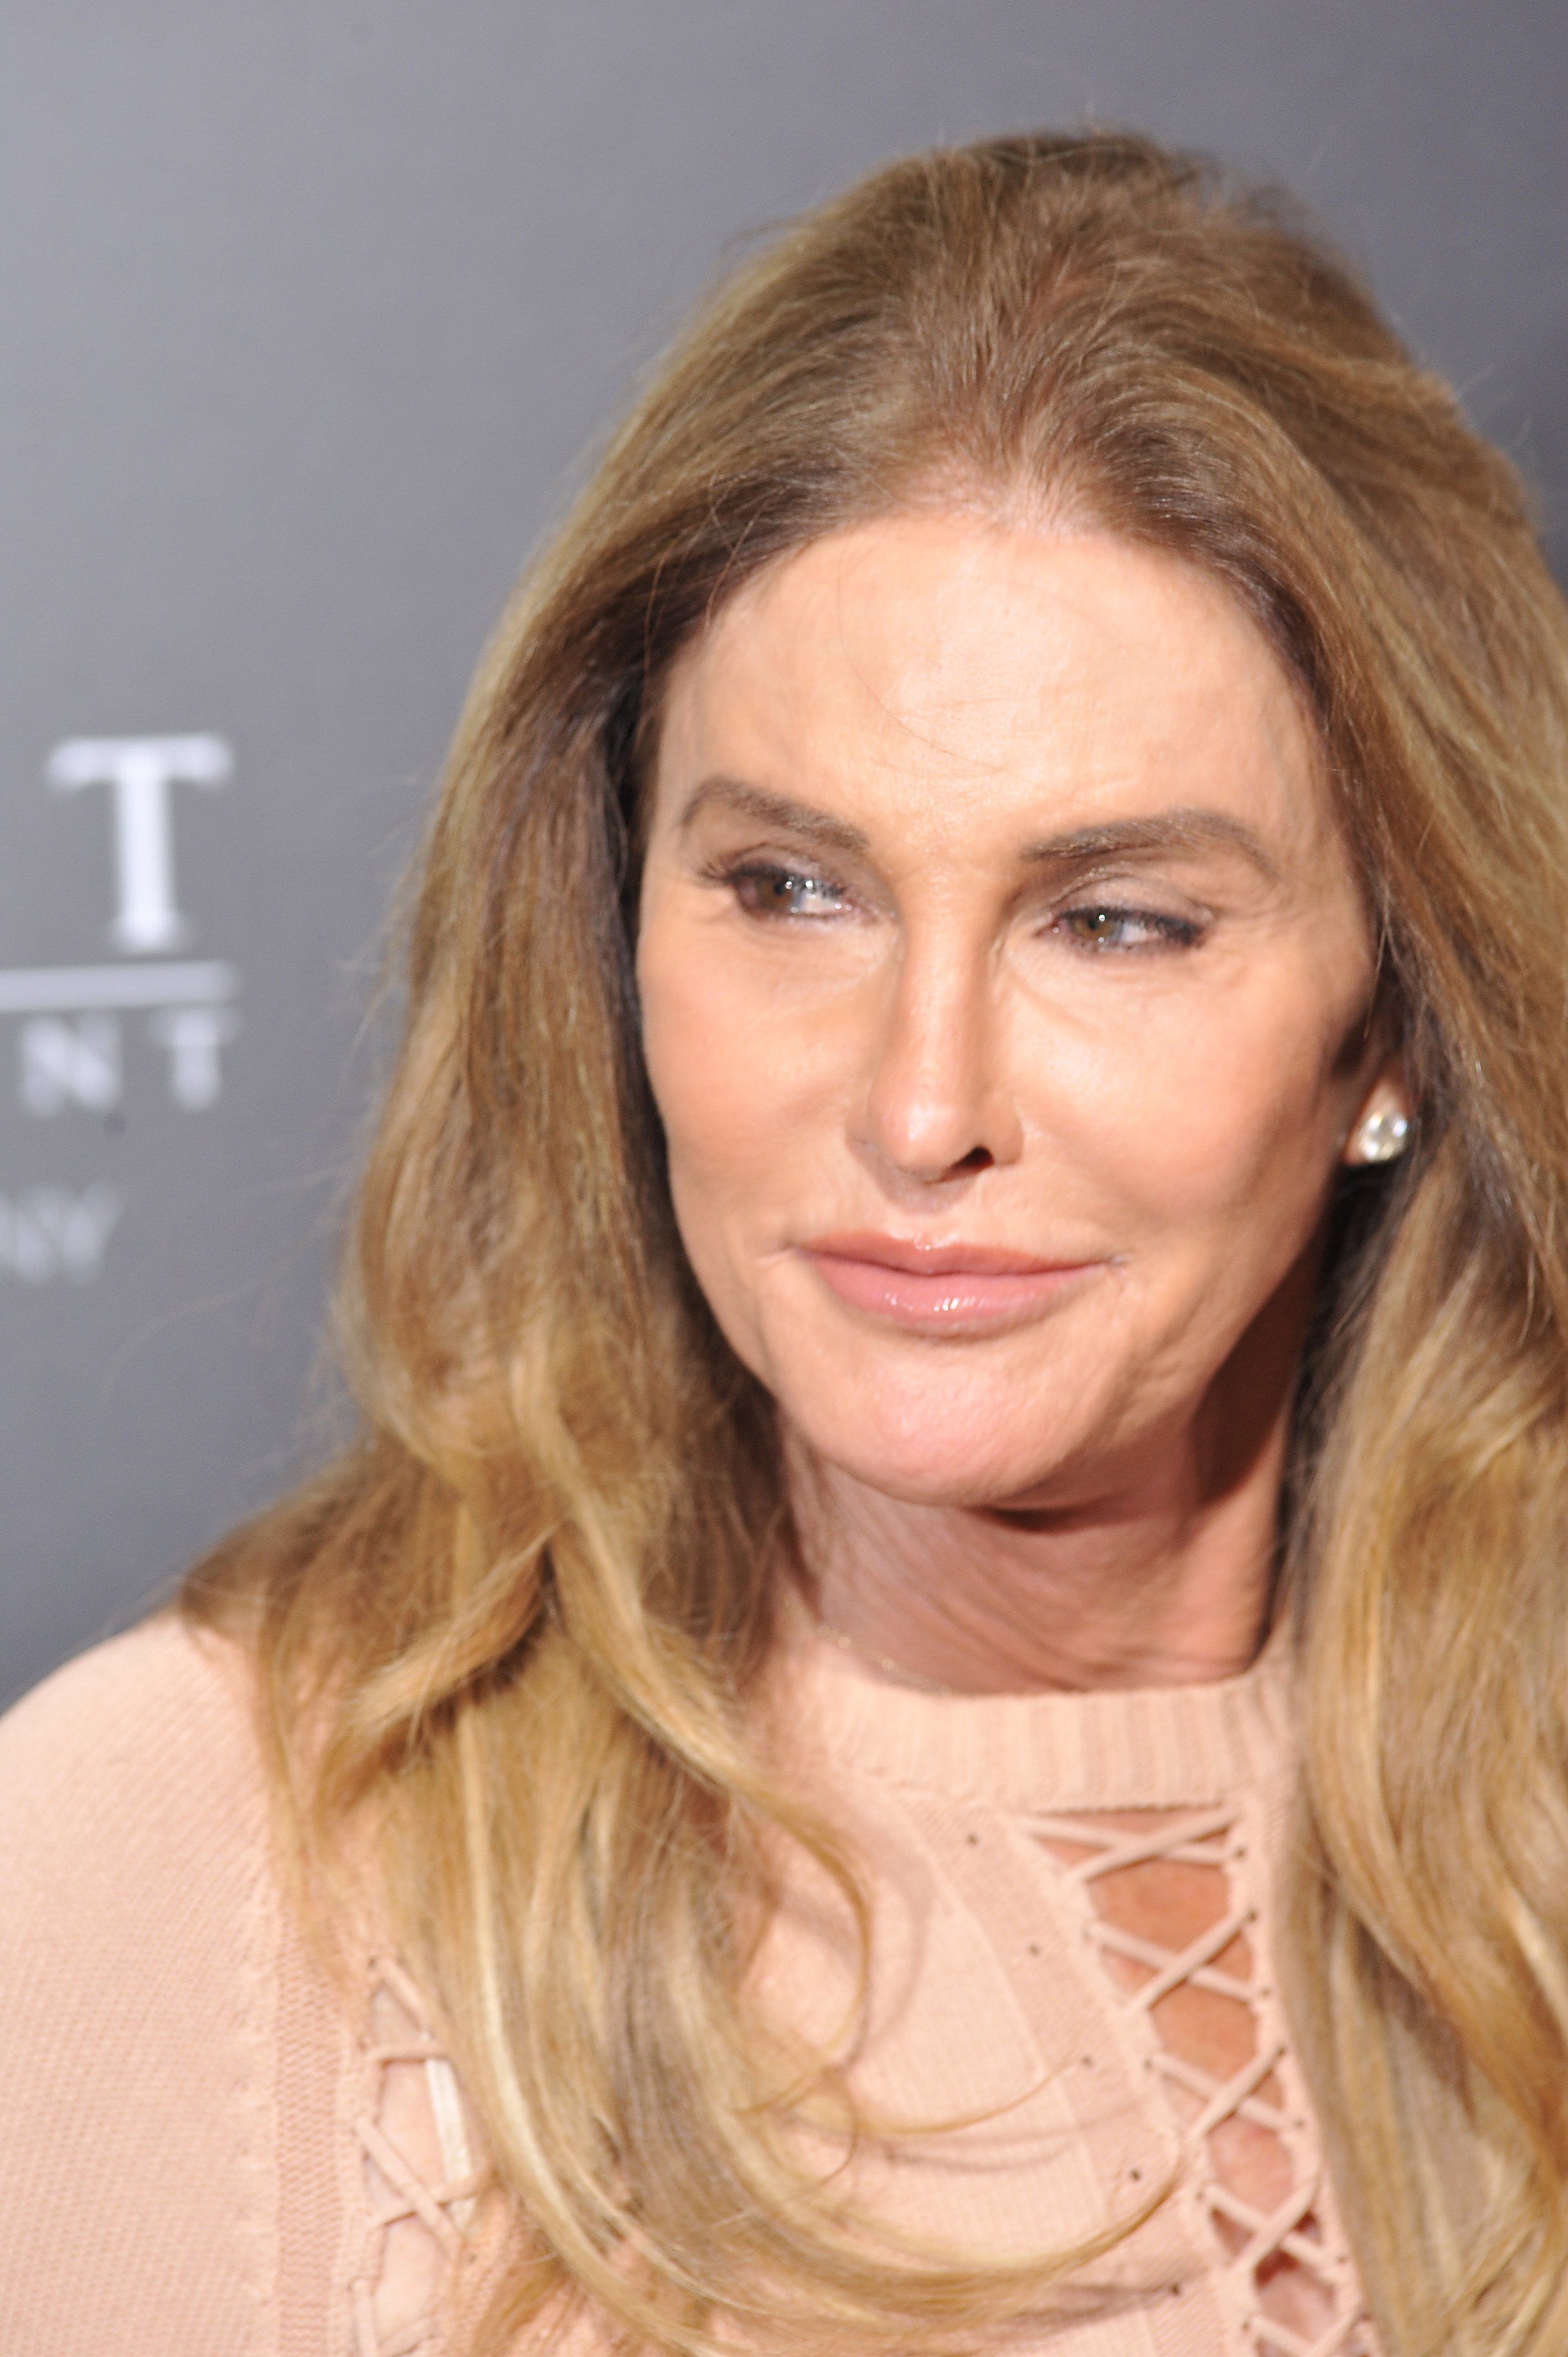 Caitlyn Jenner at Samuel Goldwyn Theater on October 24, 2016. | Source: Getty Images